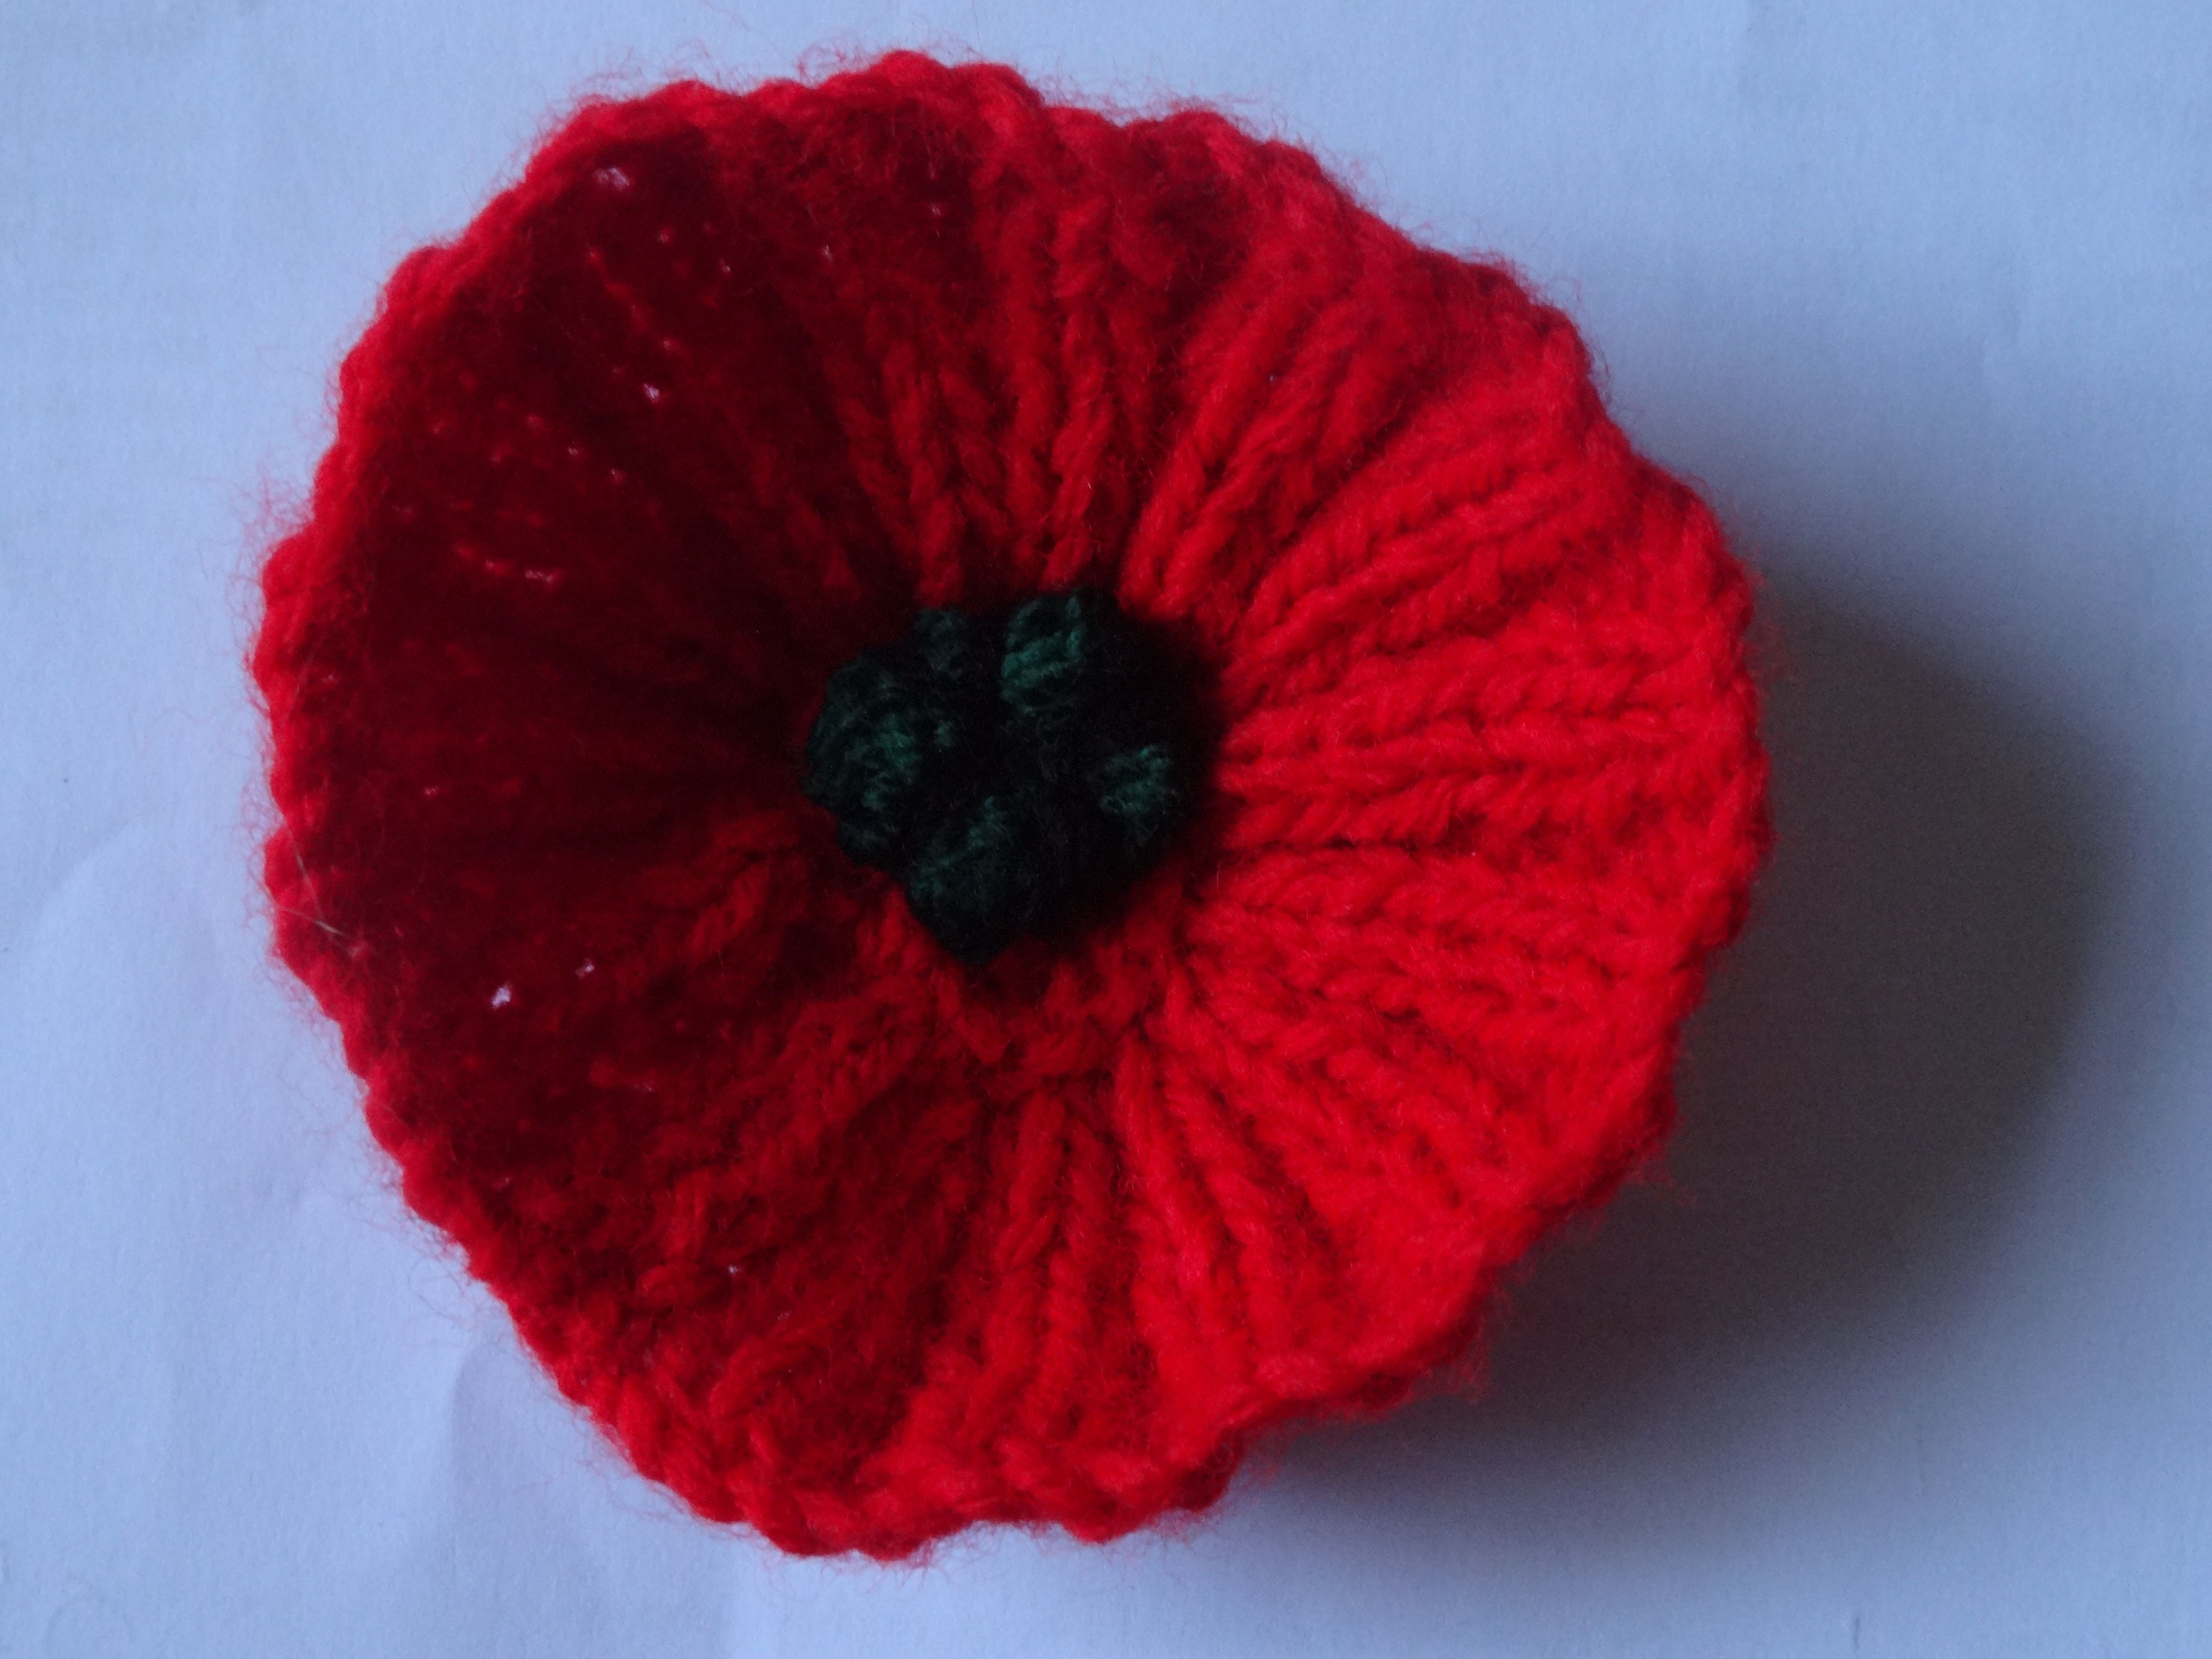 Knitting Pattern For Anzac Day Poppies : Pin by Tracey on Knitting & Crochet Pinterest